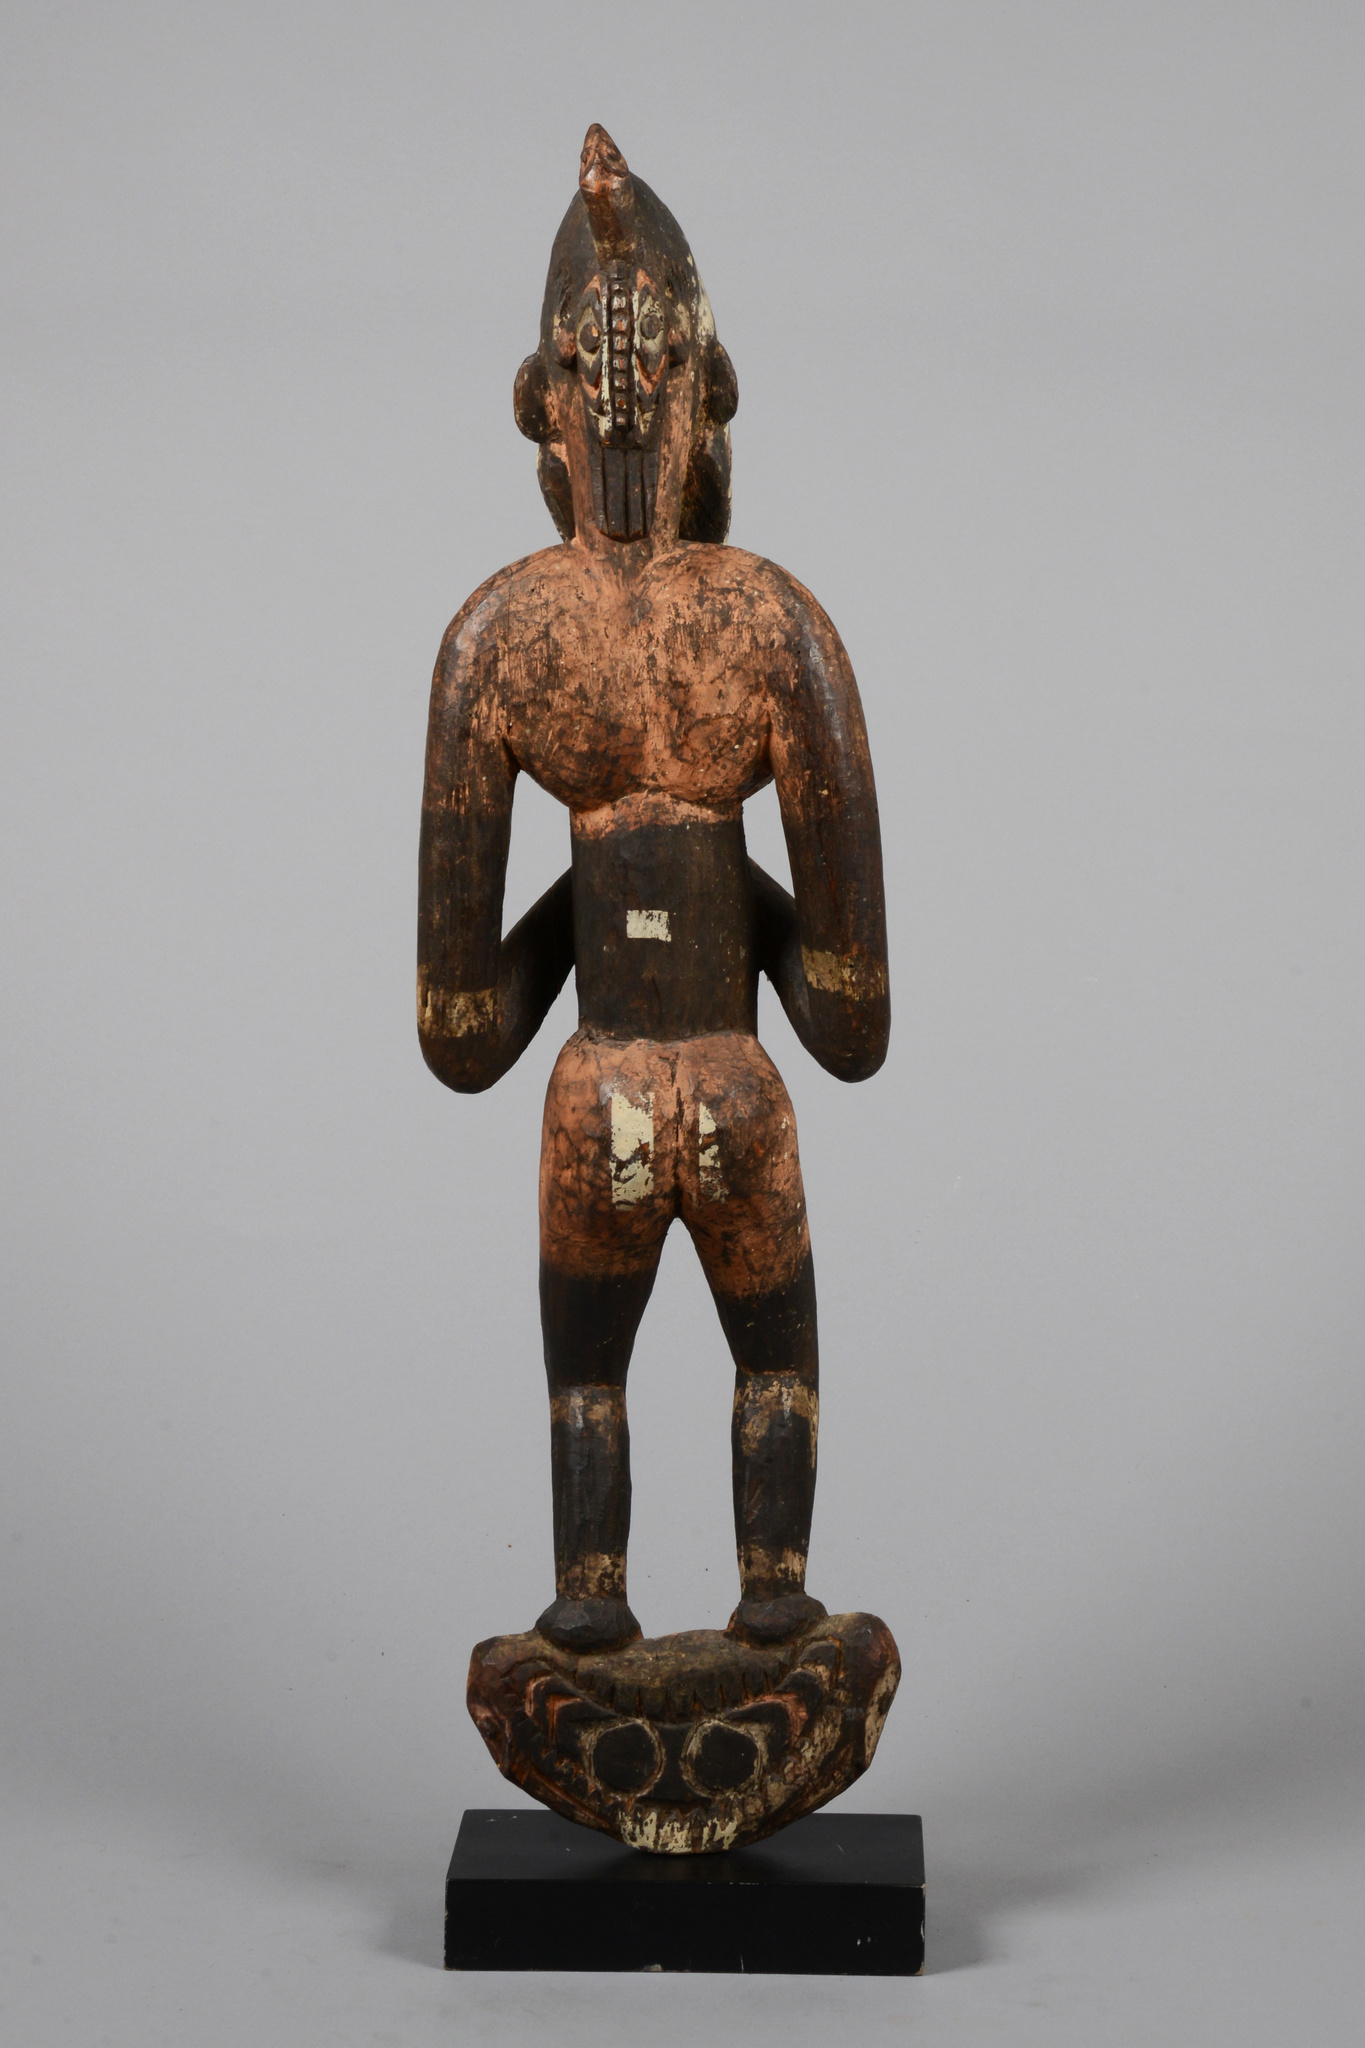 Suspension hook with male figure